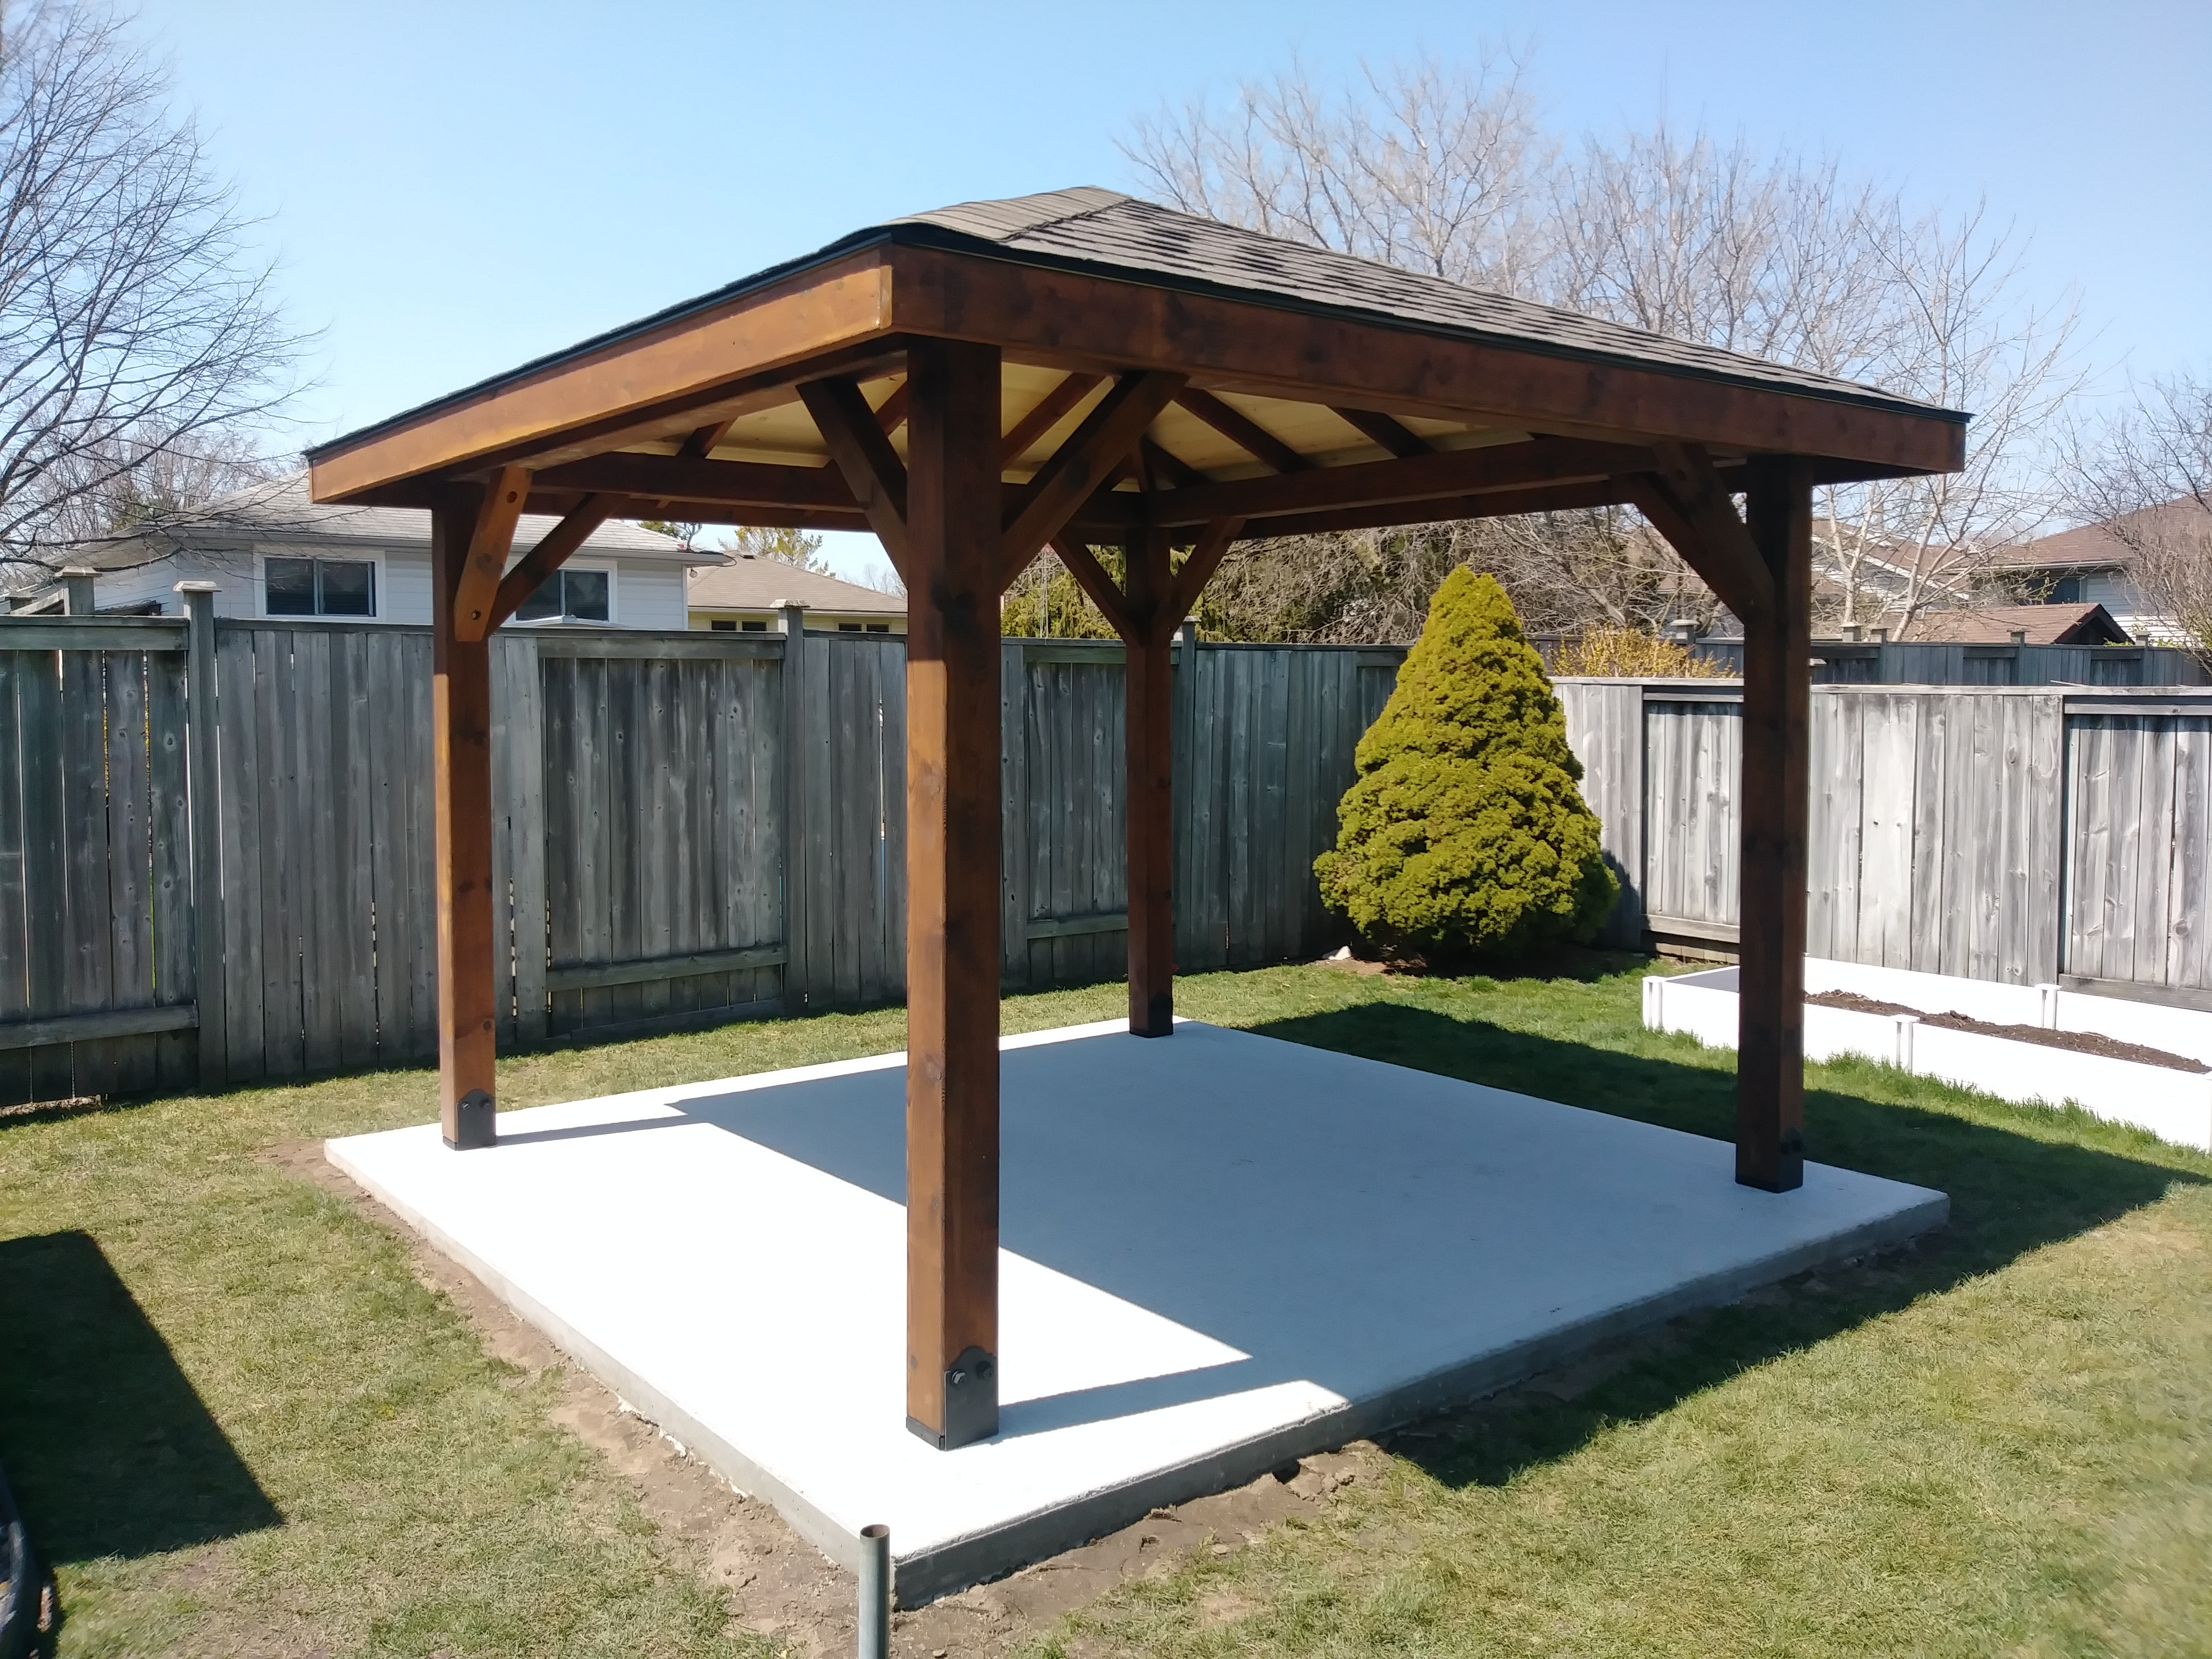 Pavilions with Hip Roofs - Gazebos - Hot Tub Enclosures